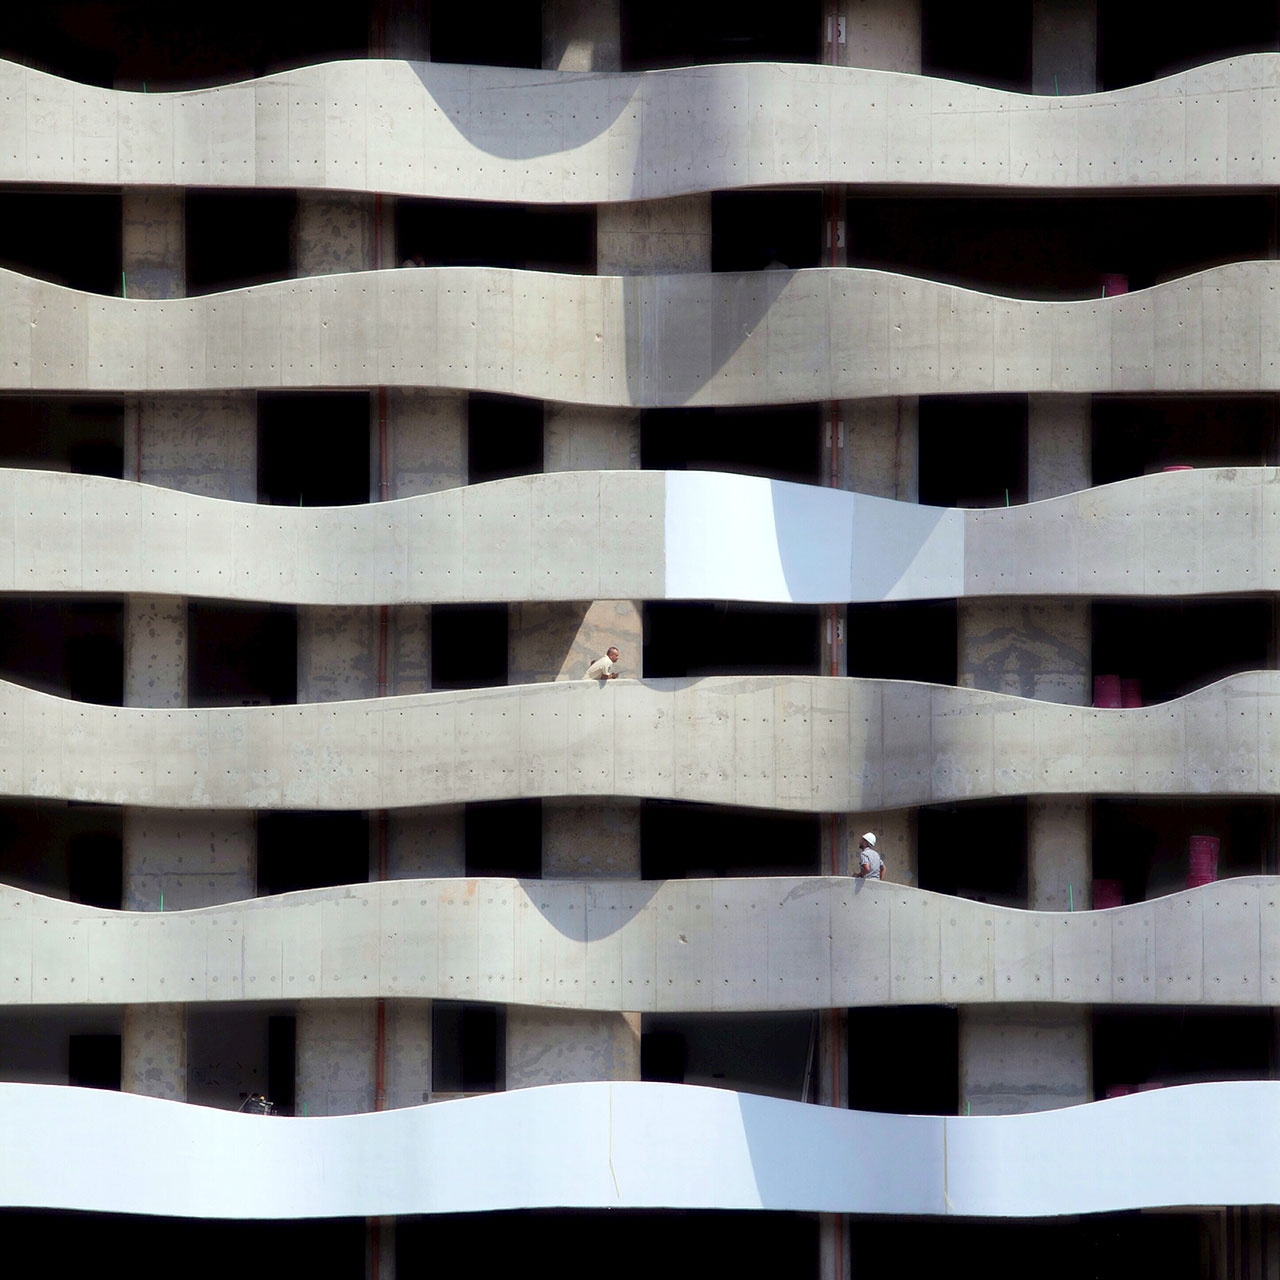 Wavy facade, photo © Serge Najjar.